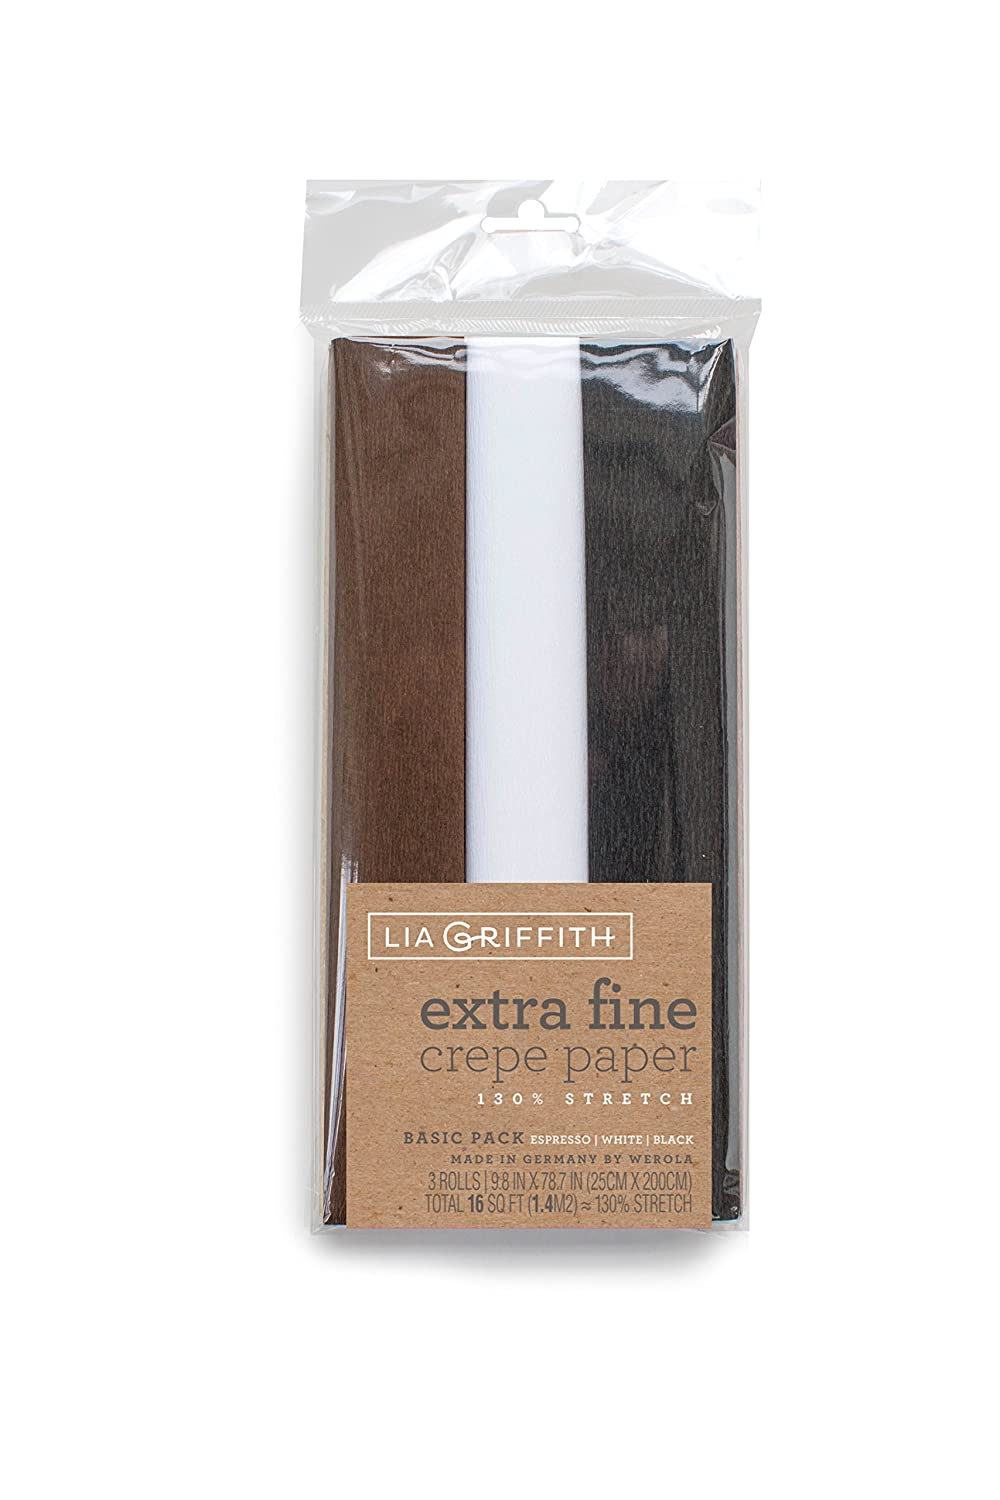 Lia Griffith Extra Fine Crepe Paper, Basic Assortment, 3 Count Pacon Corporation LG11030